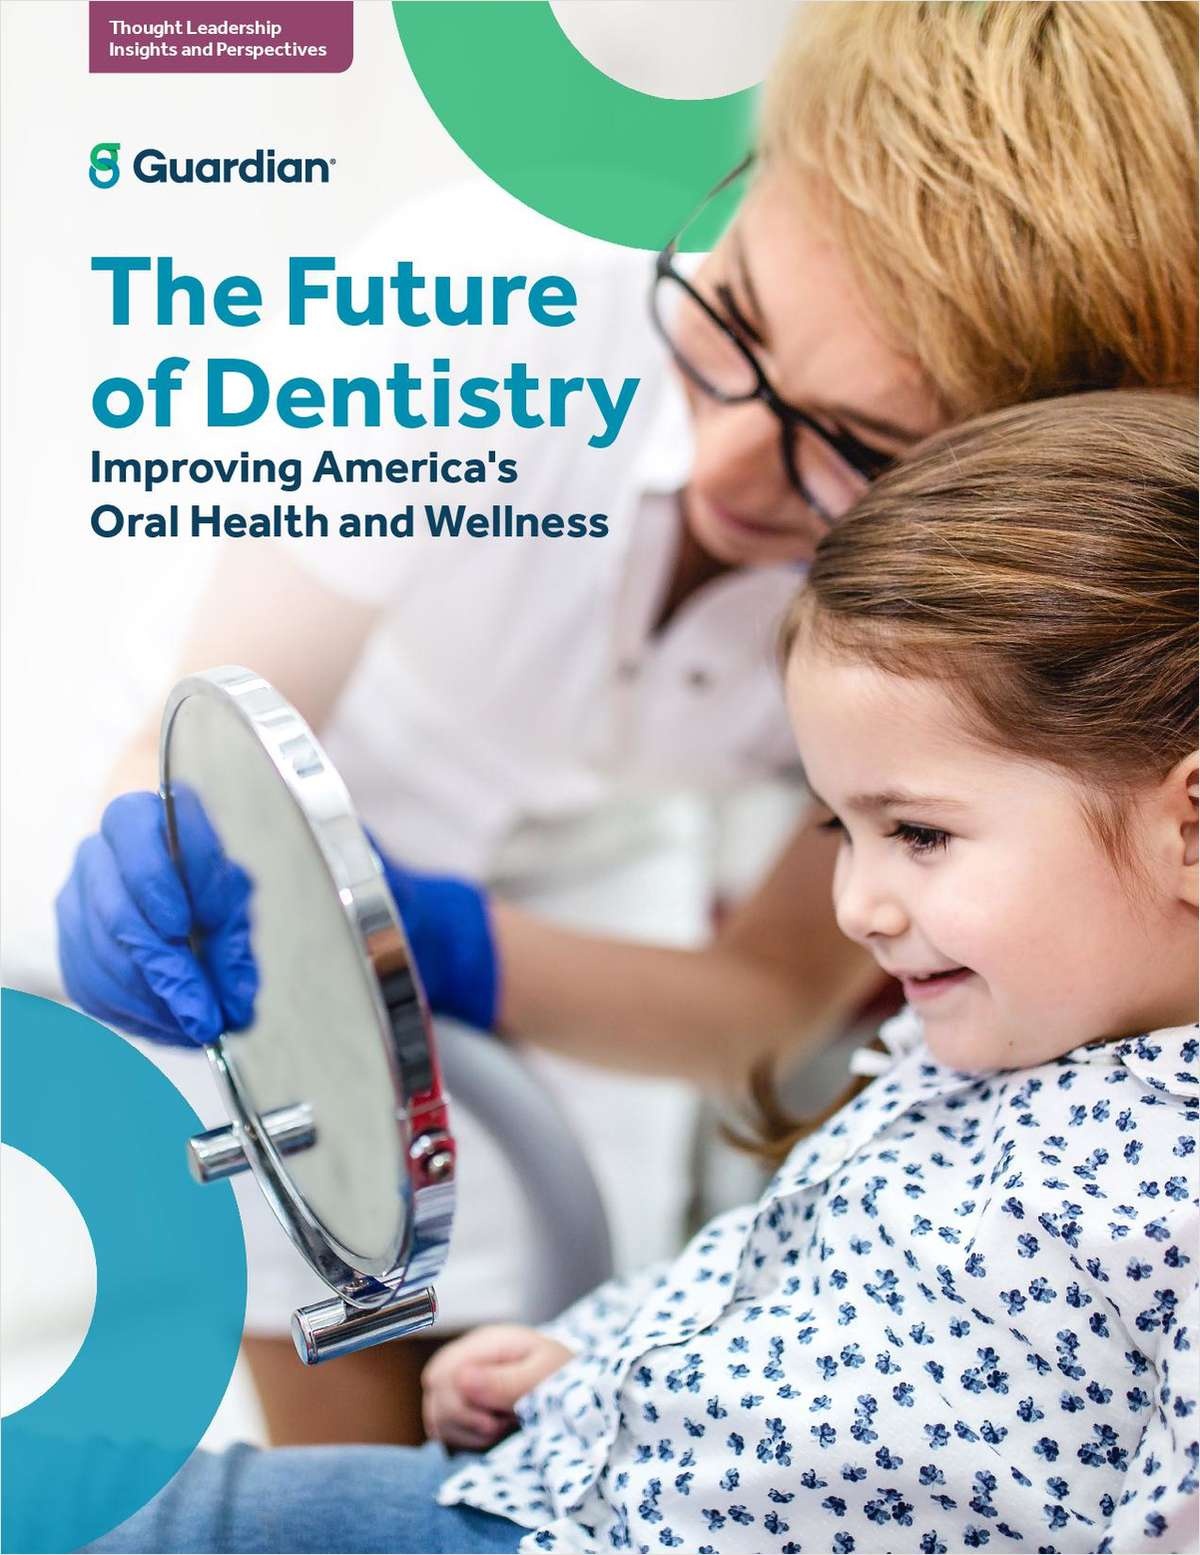 The Future of Dentistry: Improving America's Oral Health and Wellness